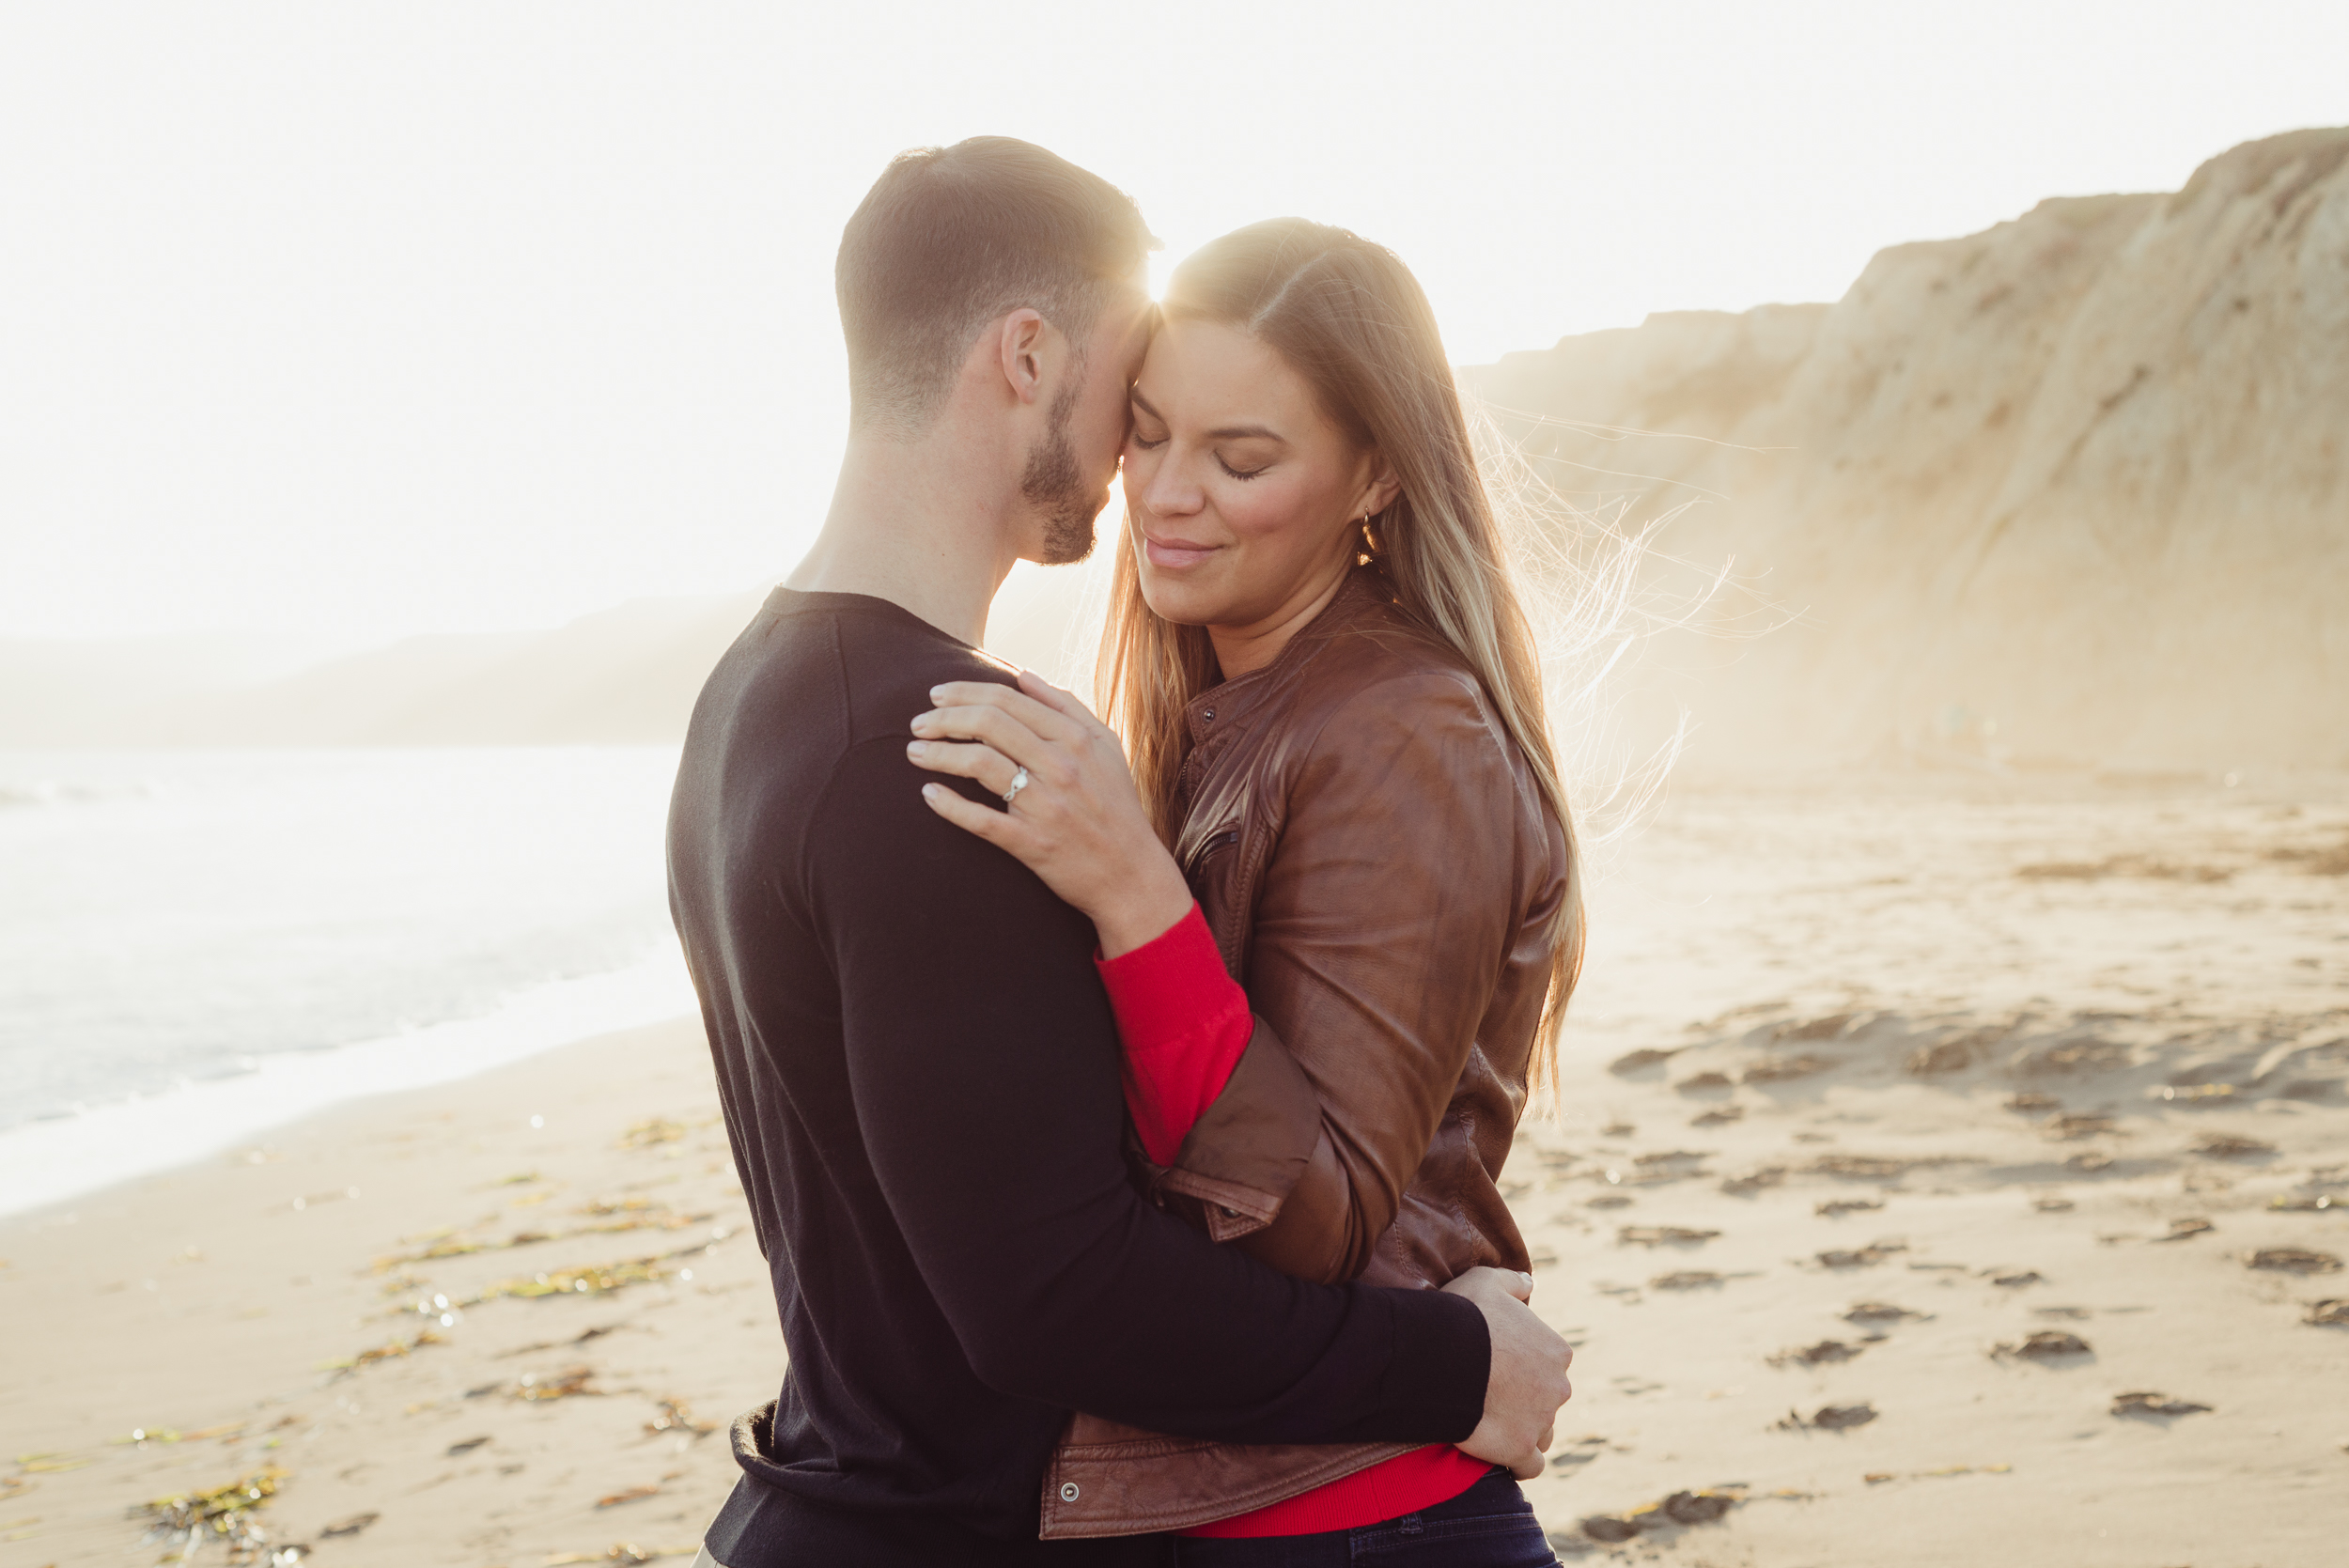 point-reyes-national-seashore-engagement-session-vivianchen-094.jpg